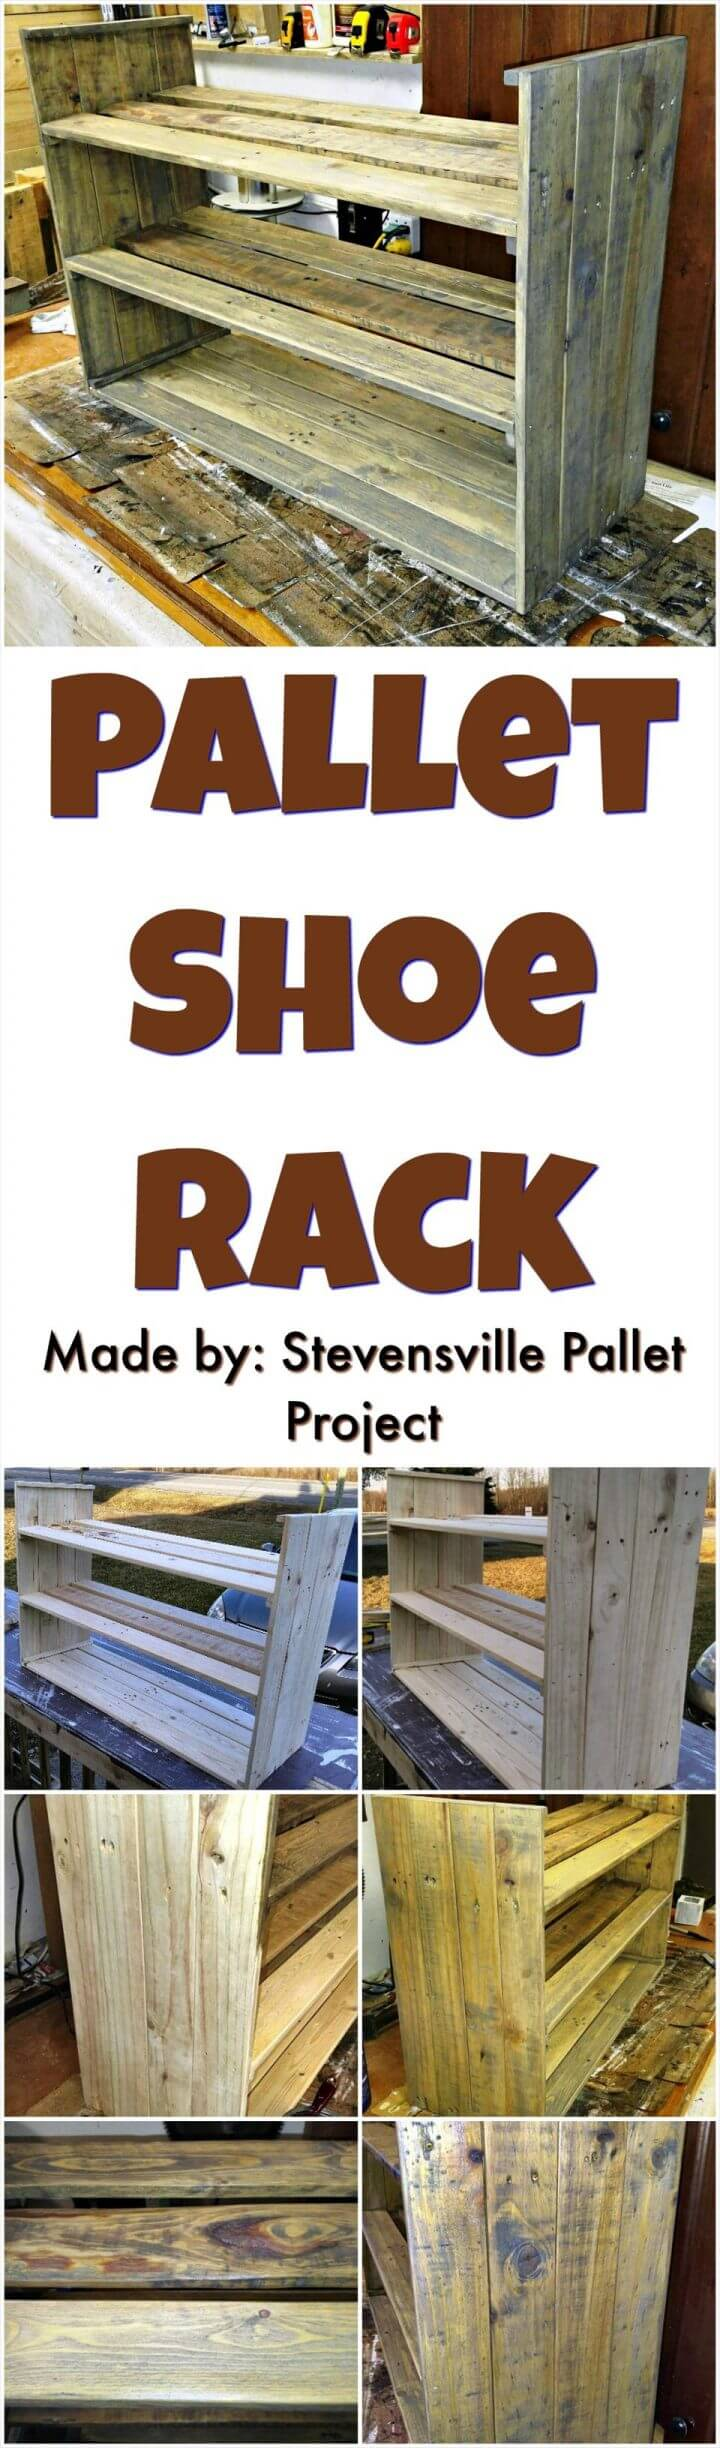 shoe rack from pallets